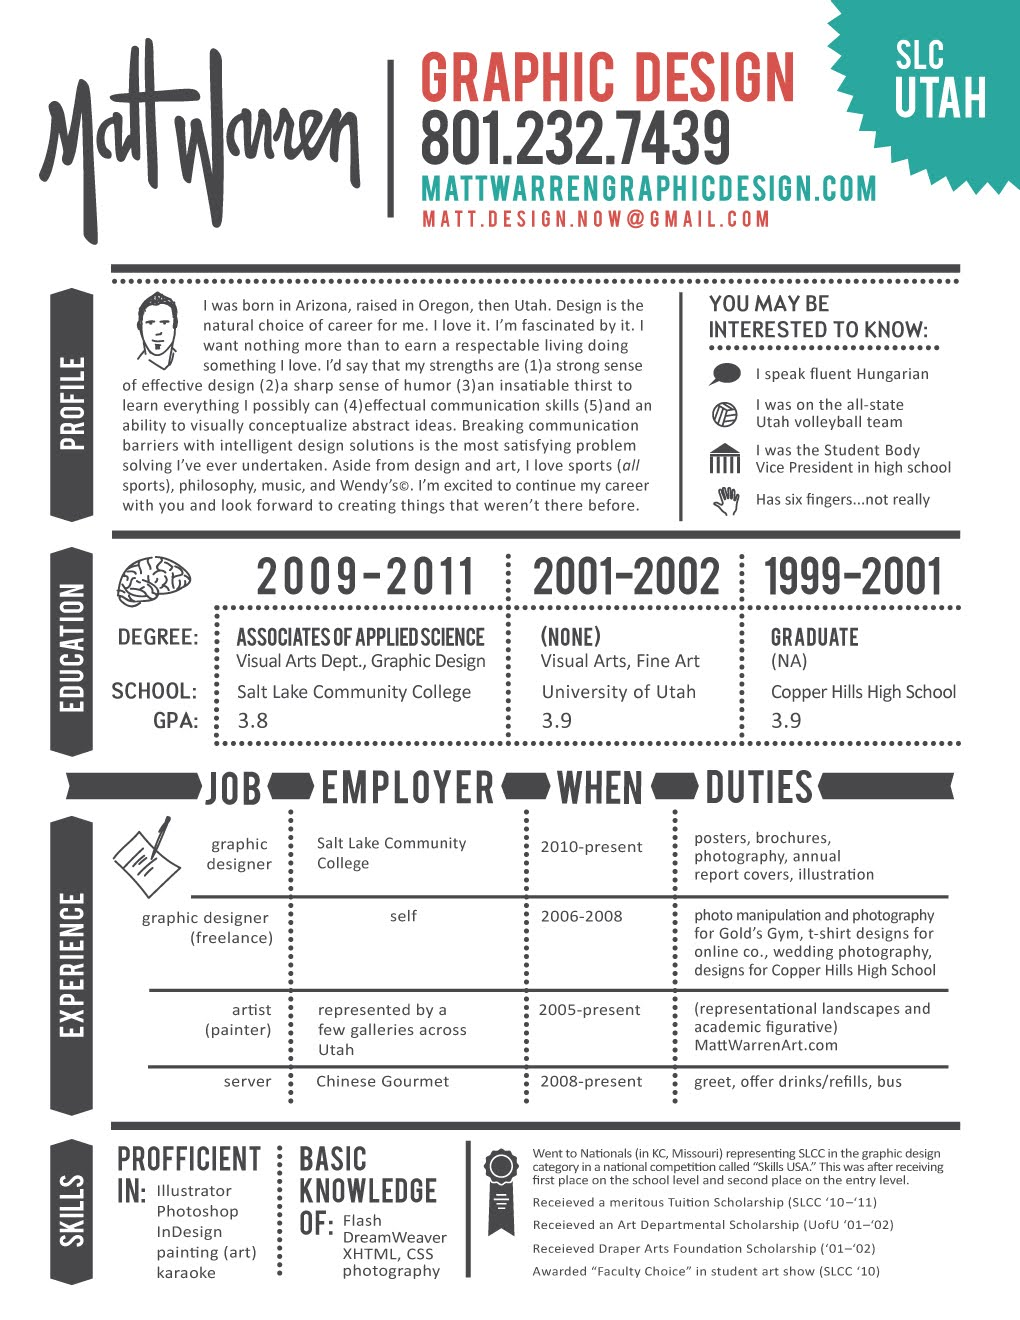 Opposenewapstandardsus  Gorgeous  Images About Hire Me On Pinterest  Graphic Designer Resume  With Handsome  Images About Hire Me On Pinterest  Graphic Designer Resume Resume Design And Resume With Attractive Resume For Project Manager Also Journeyman Electrician Resume In Addition Bartender Resume Objective And Classic Resume Template As Well As Waitress Resume Example Additionally What Needs To Be On A Resume From Pinterestcom With Opposenewapstandardsus  Handsome  Images About Hire Me On Pinterest  Graphic Designer Resume  With Attractive  Images About Hire Me On Pinterest  Graphic Designer Resume Resume Design And Resume And Gorgeous Resume For Project Manager Also Journeyman Electrician Resume In Addition Bartender Resume Objective From Pinterestcom